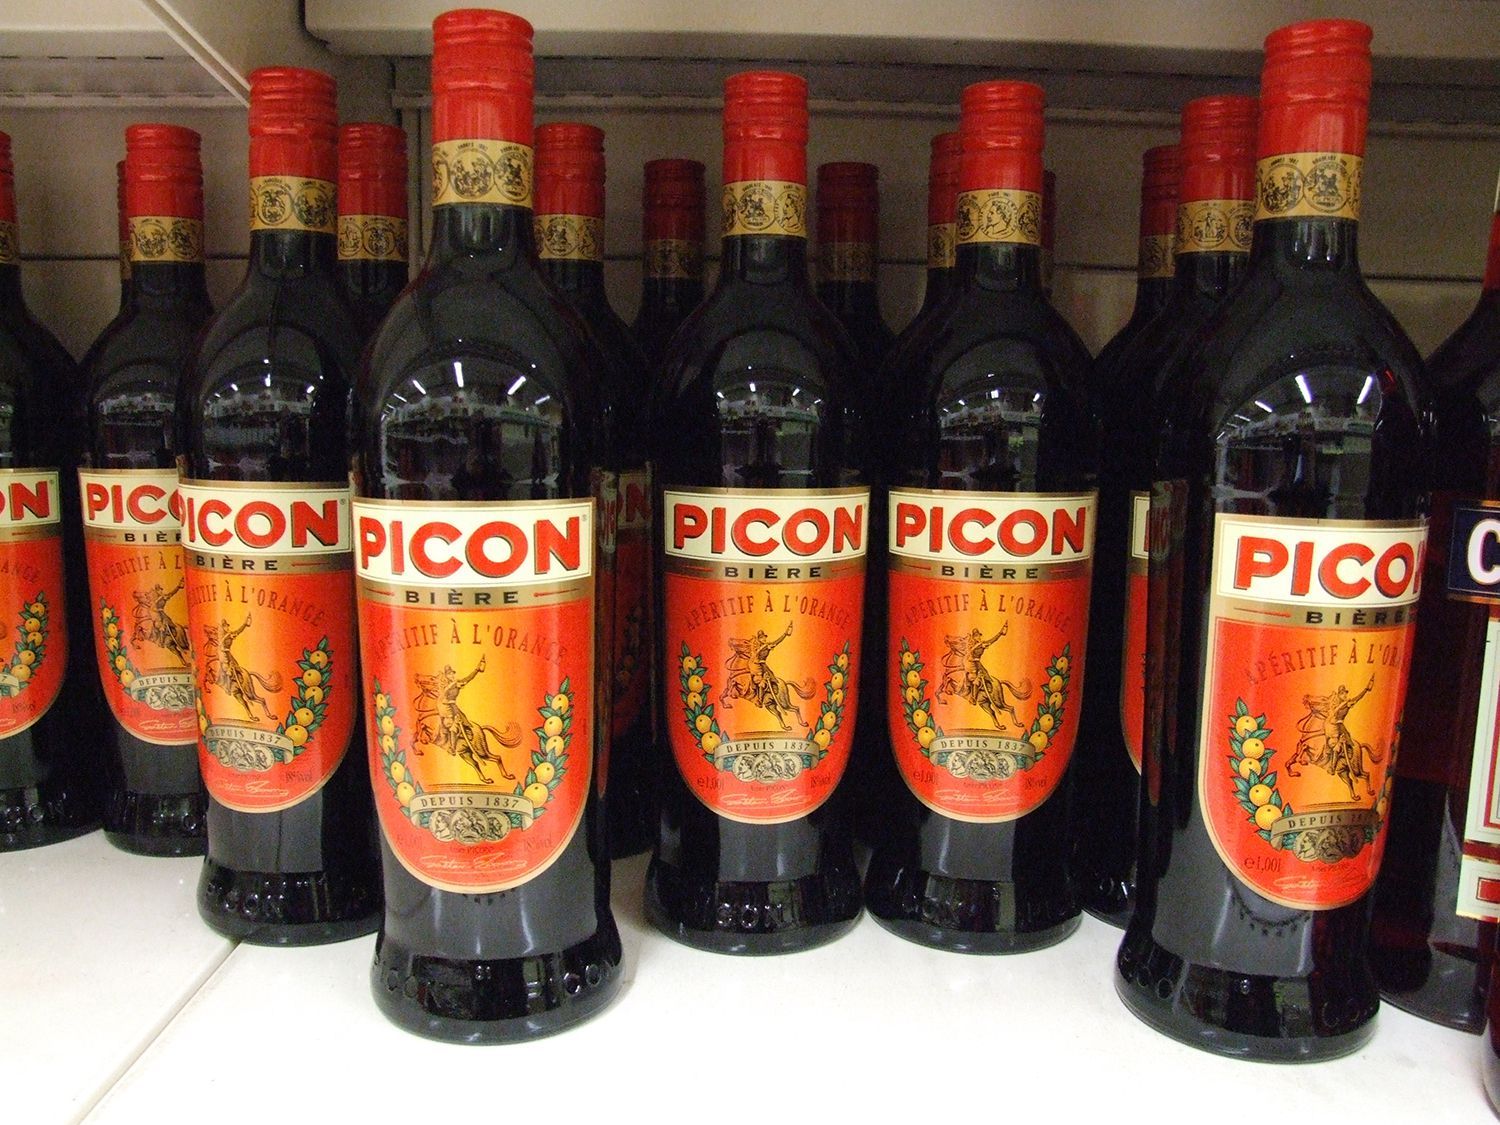 Cuisine Bernard What Is Amer Picon And How Do I Find It?